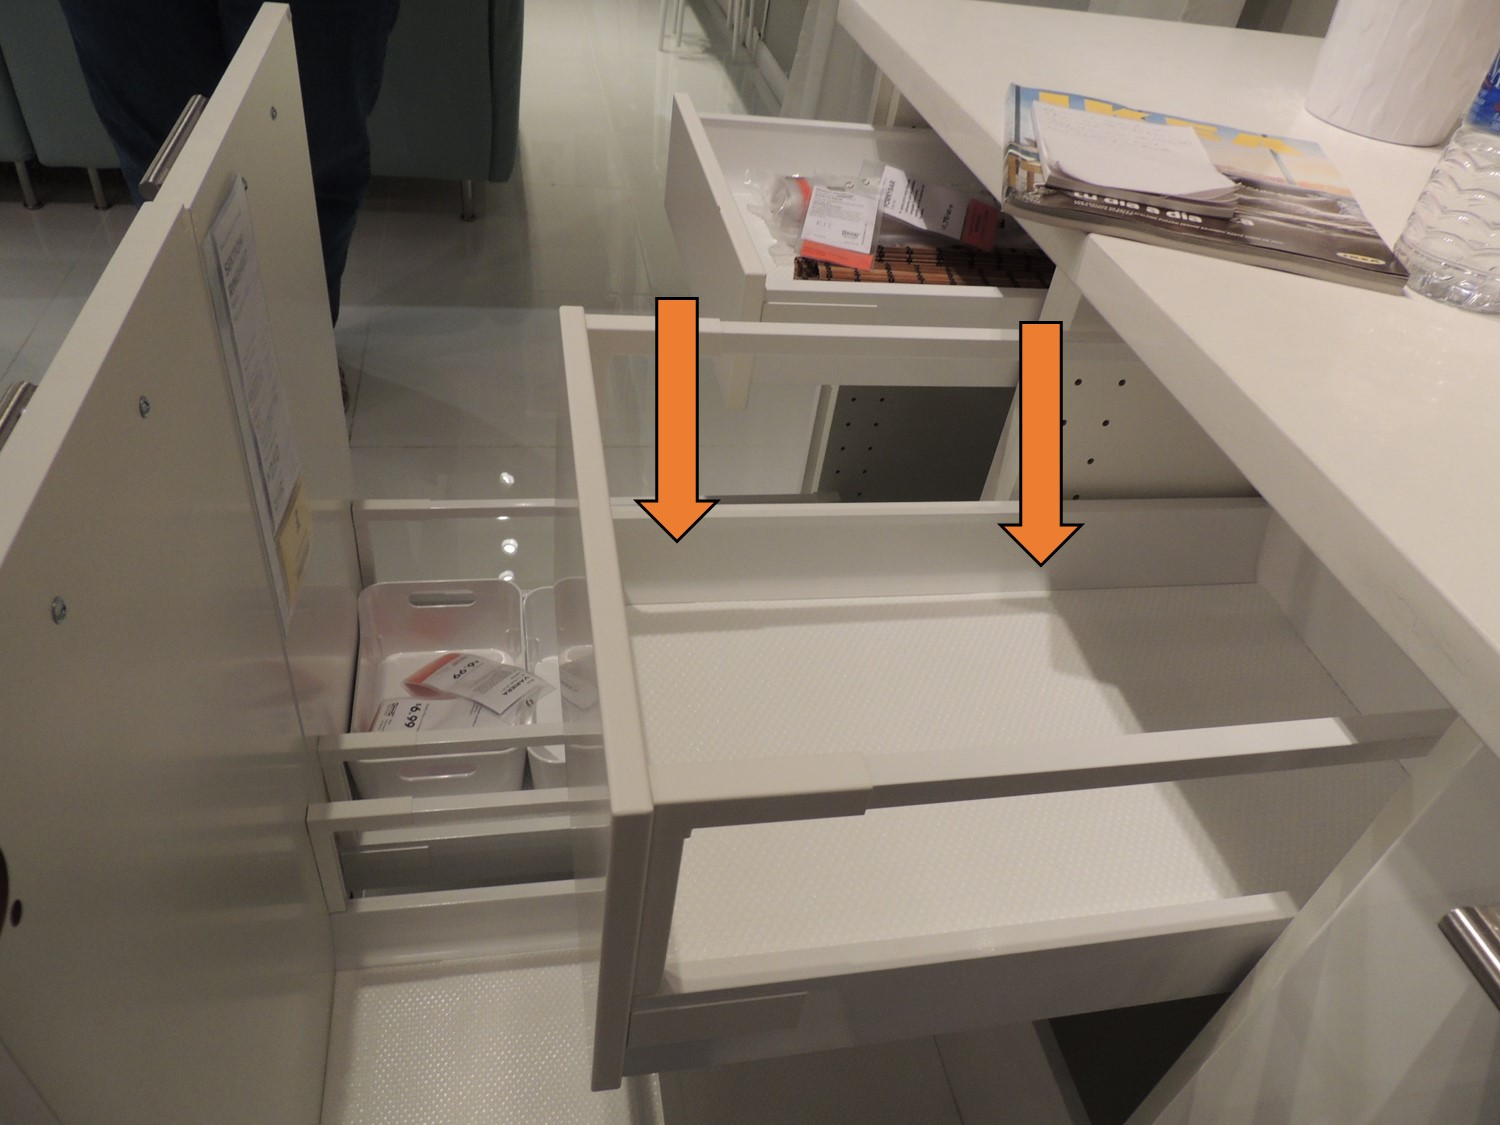 See The Curved Sides At The Bottom Of The MAXIMERA Drawer?